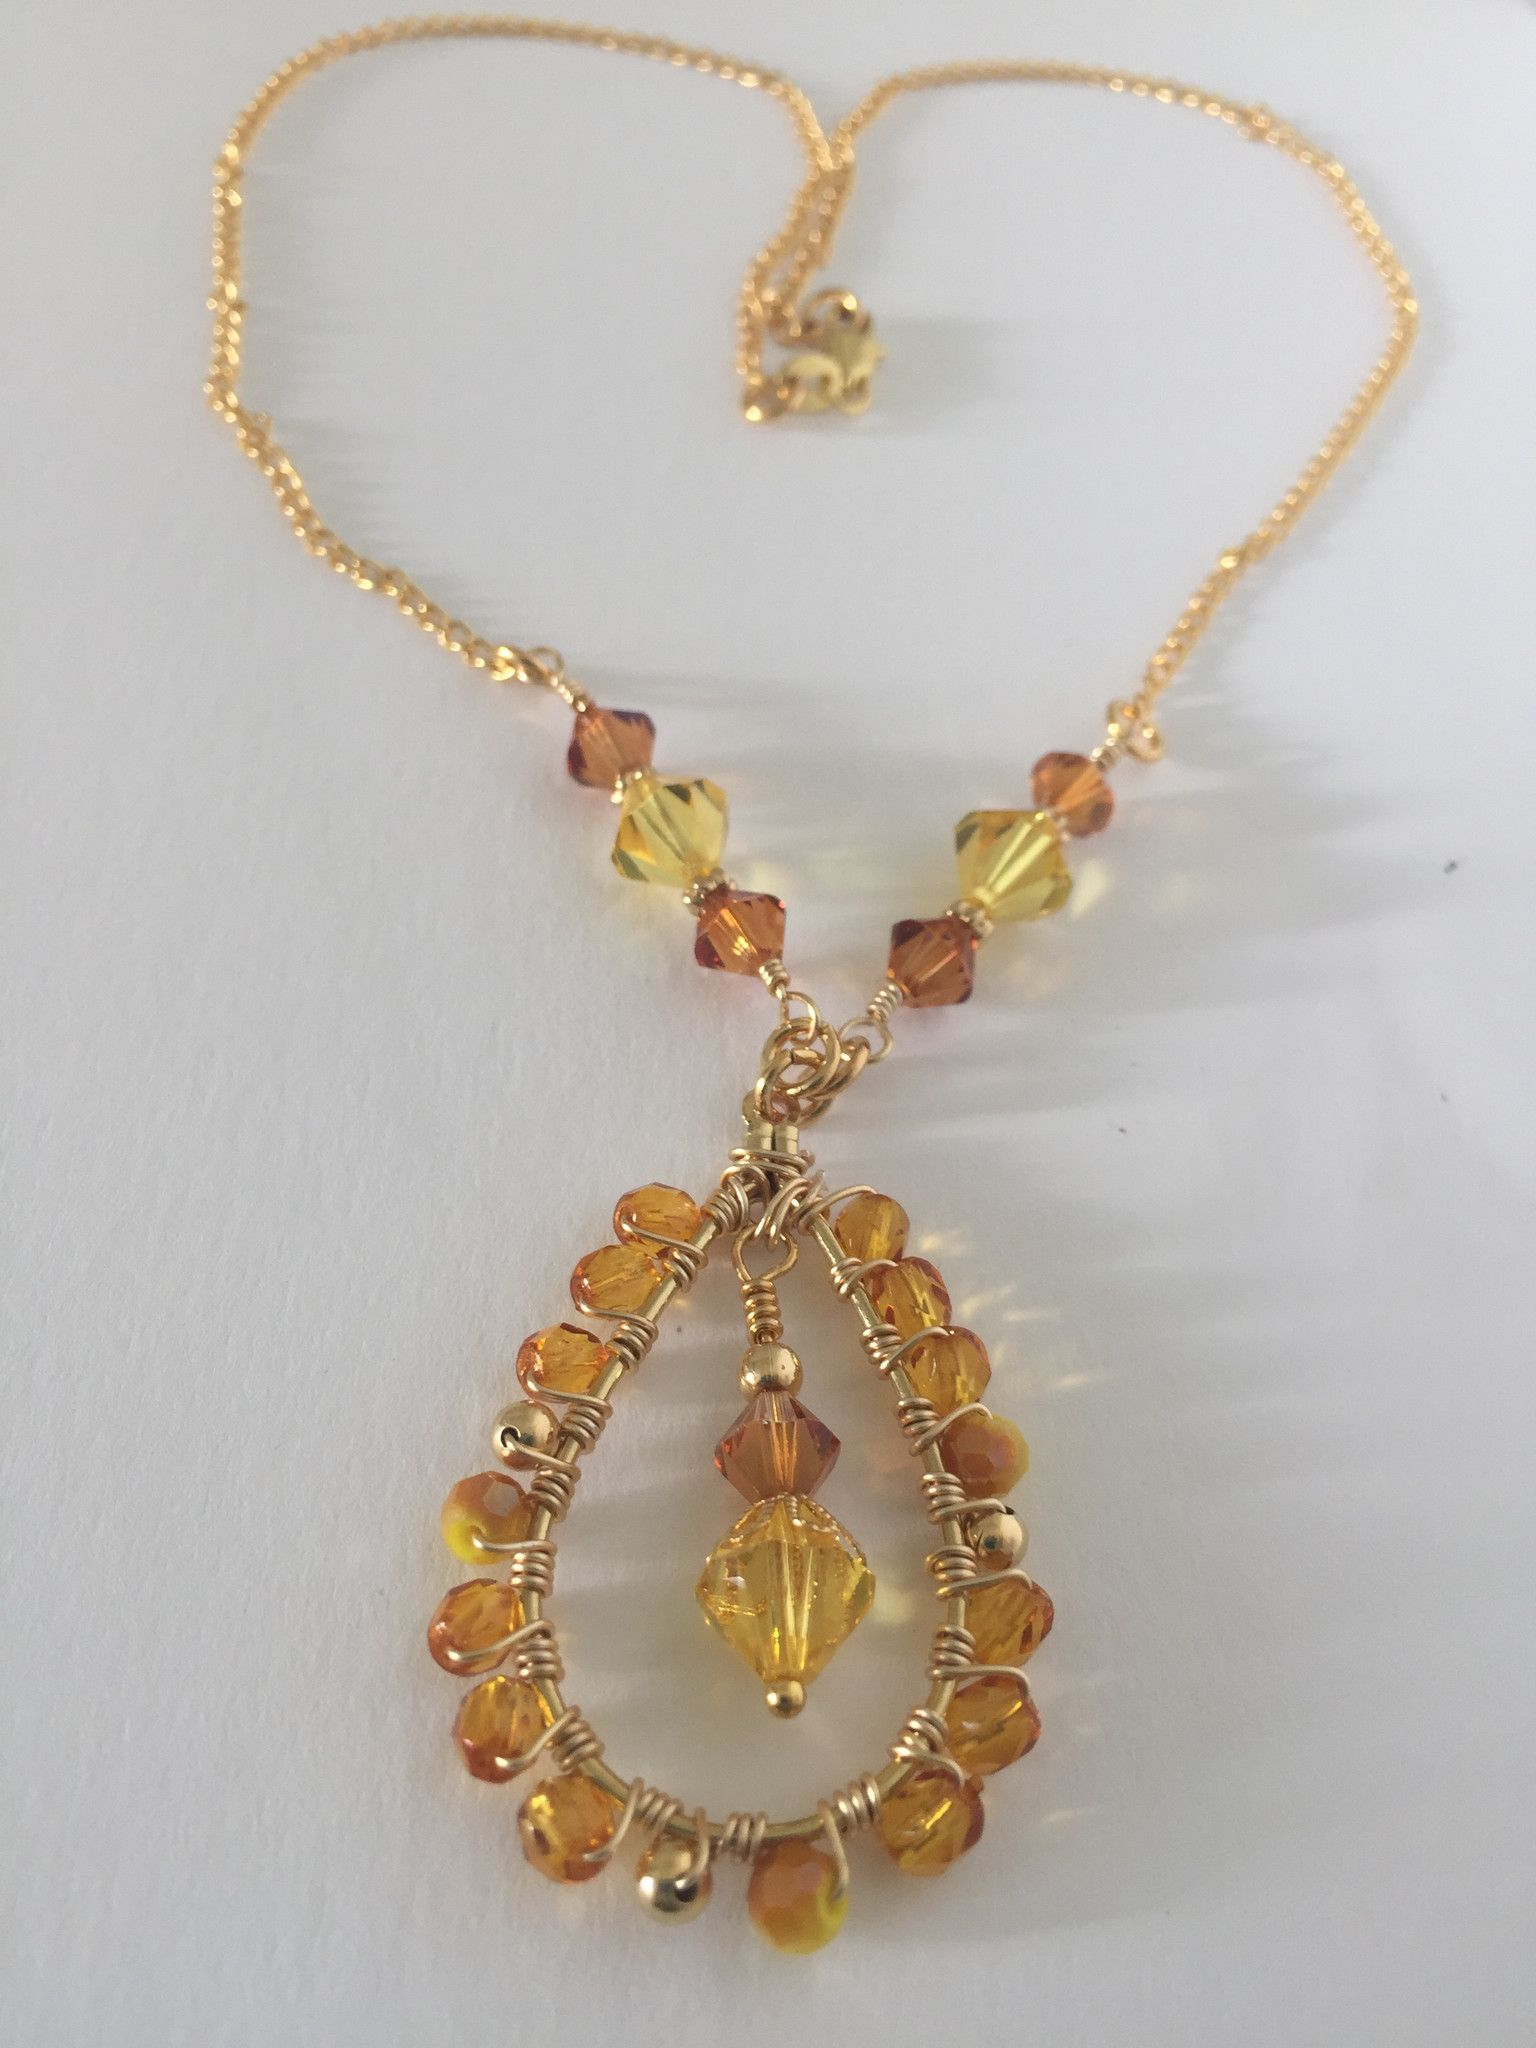 Wire wrapping necklace a perfect combination of yellow 6mm and 4mm Swarovski crystal, 6mm and 4mm yellow Swarovski, using a wire wrapping technique for the pendant and for the finish a 18k gold plated